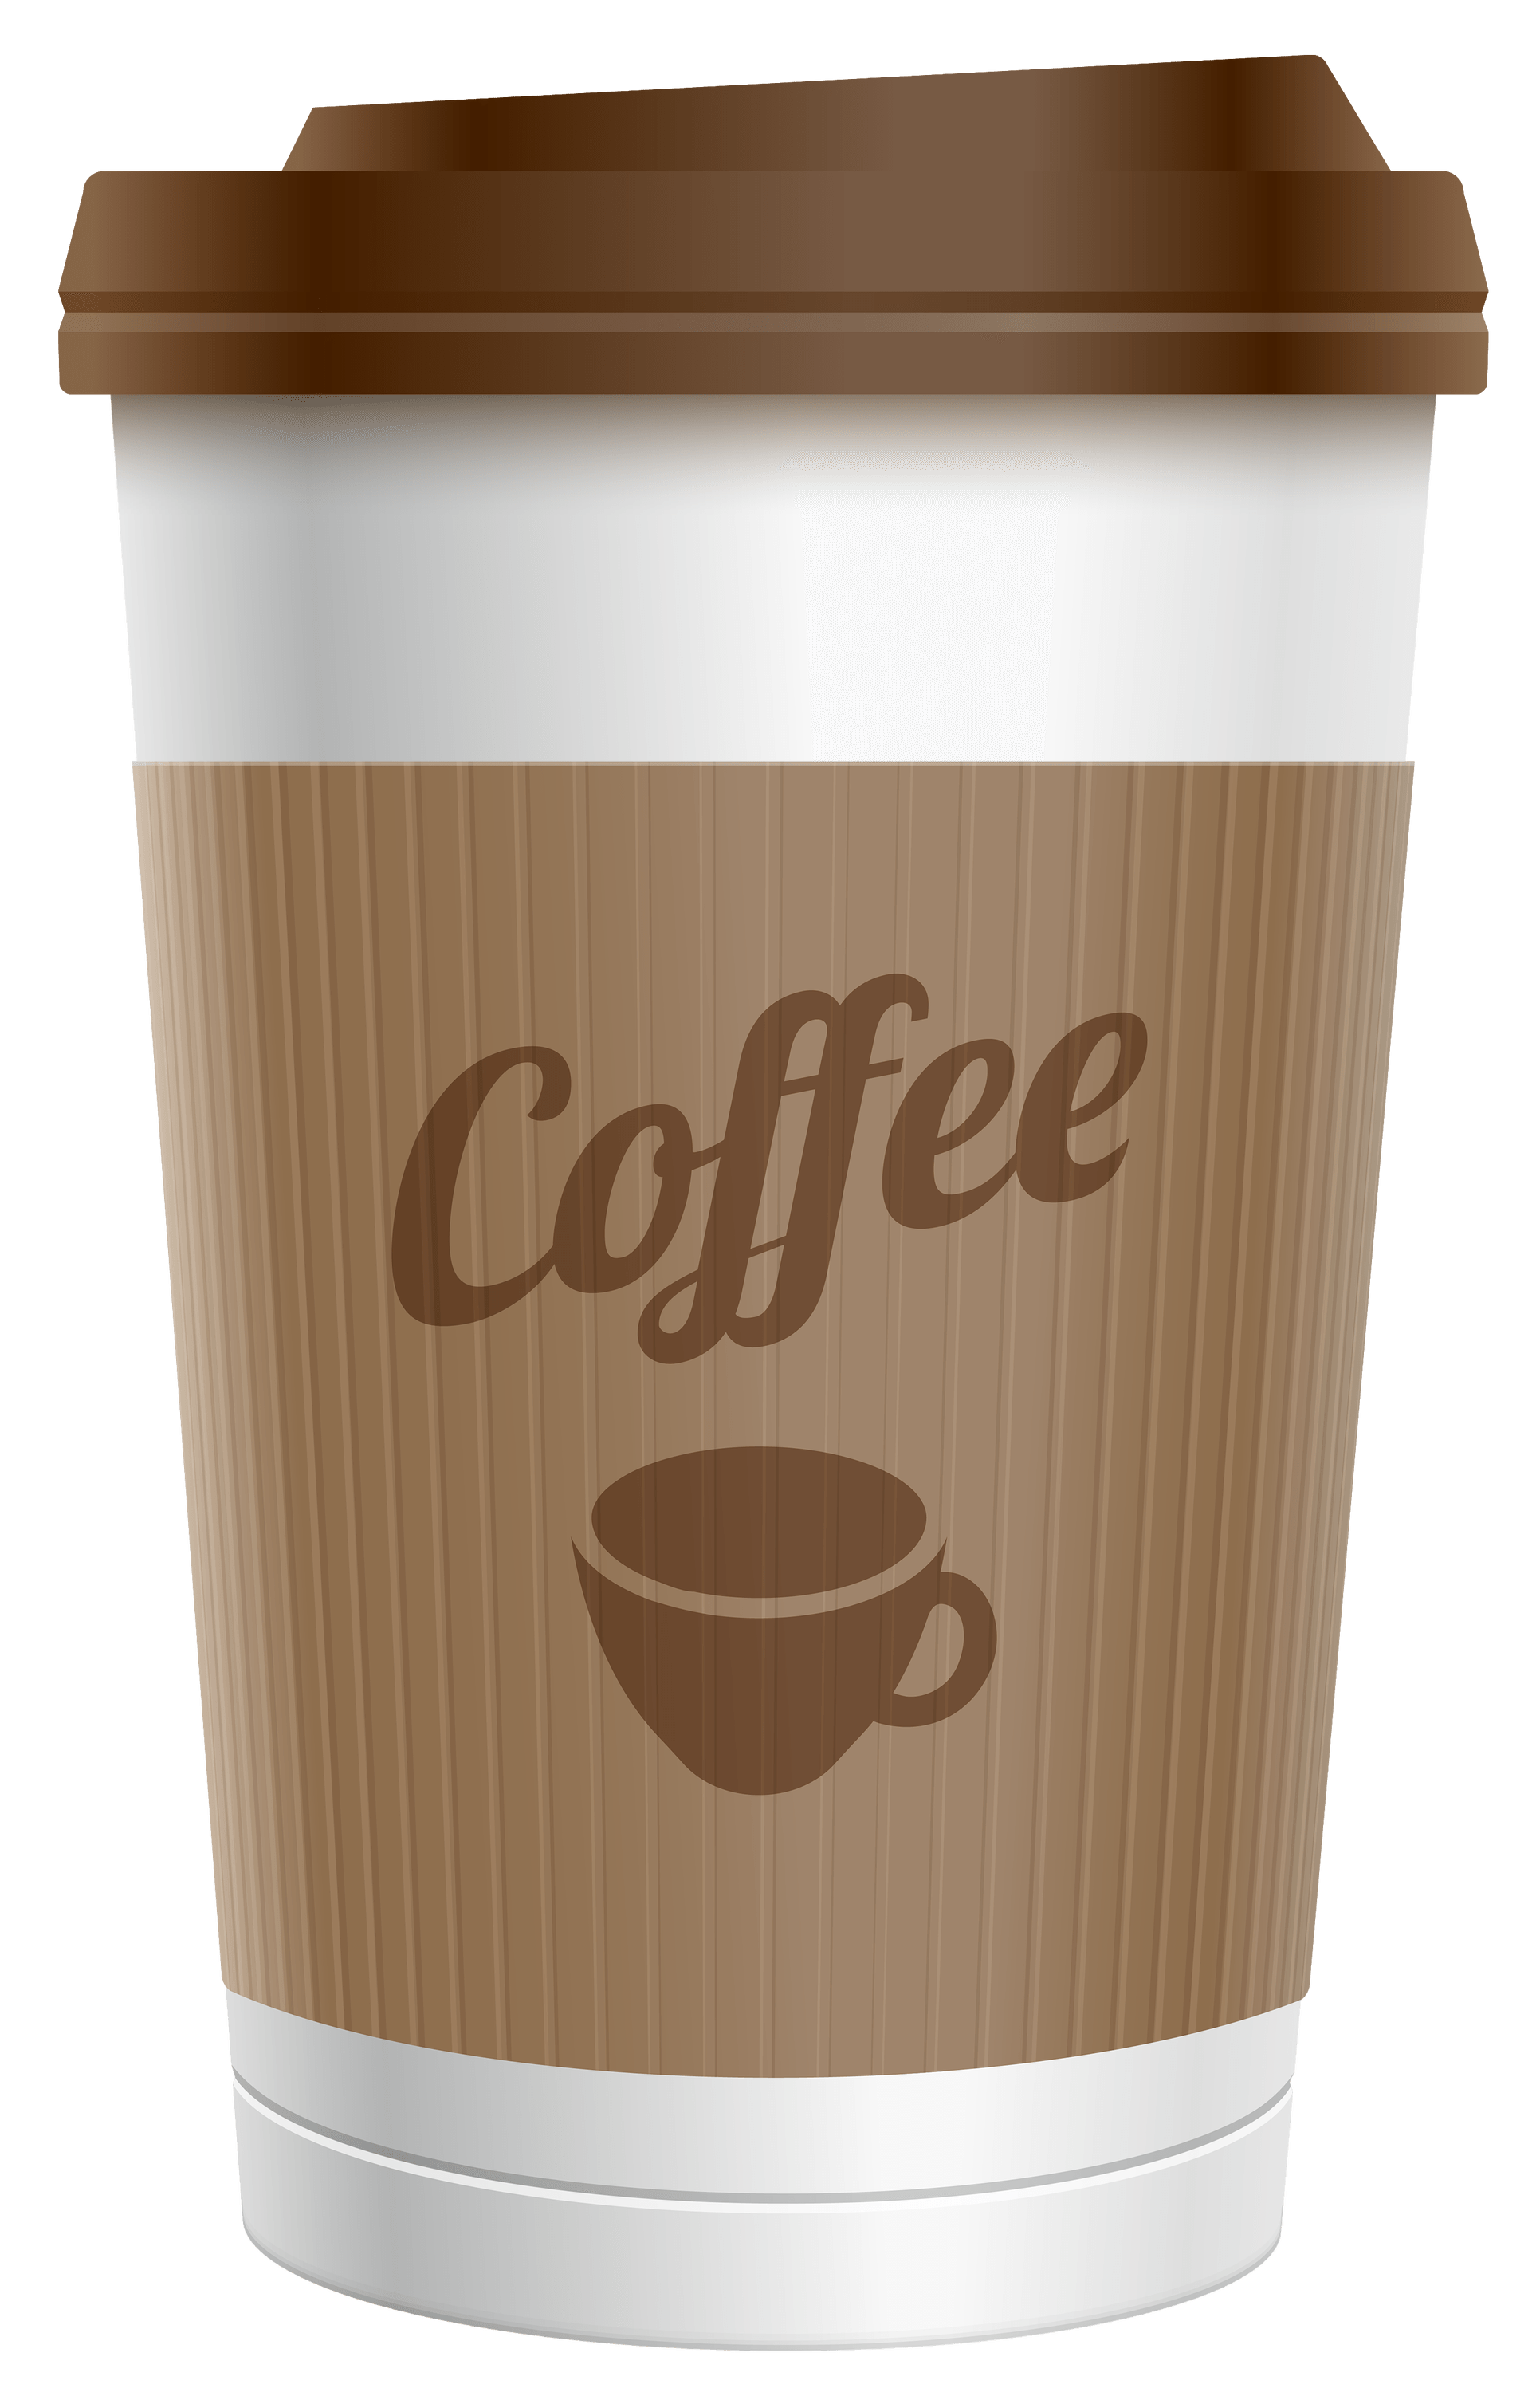 Milkshake Coffee Cappuccino Espresso Cafe Free Clipart HQ PNG Image